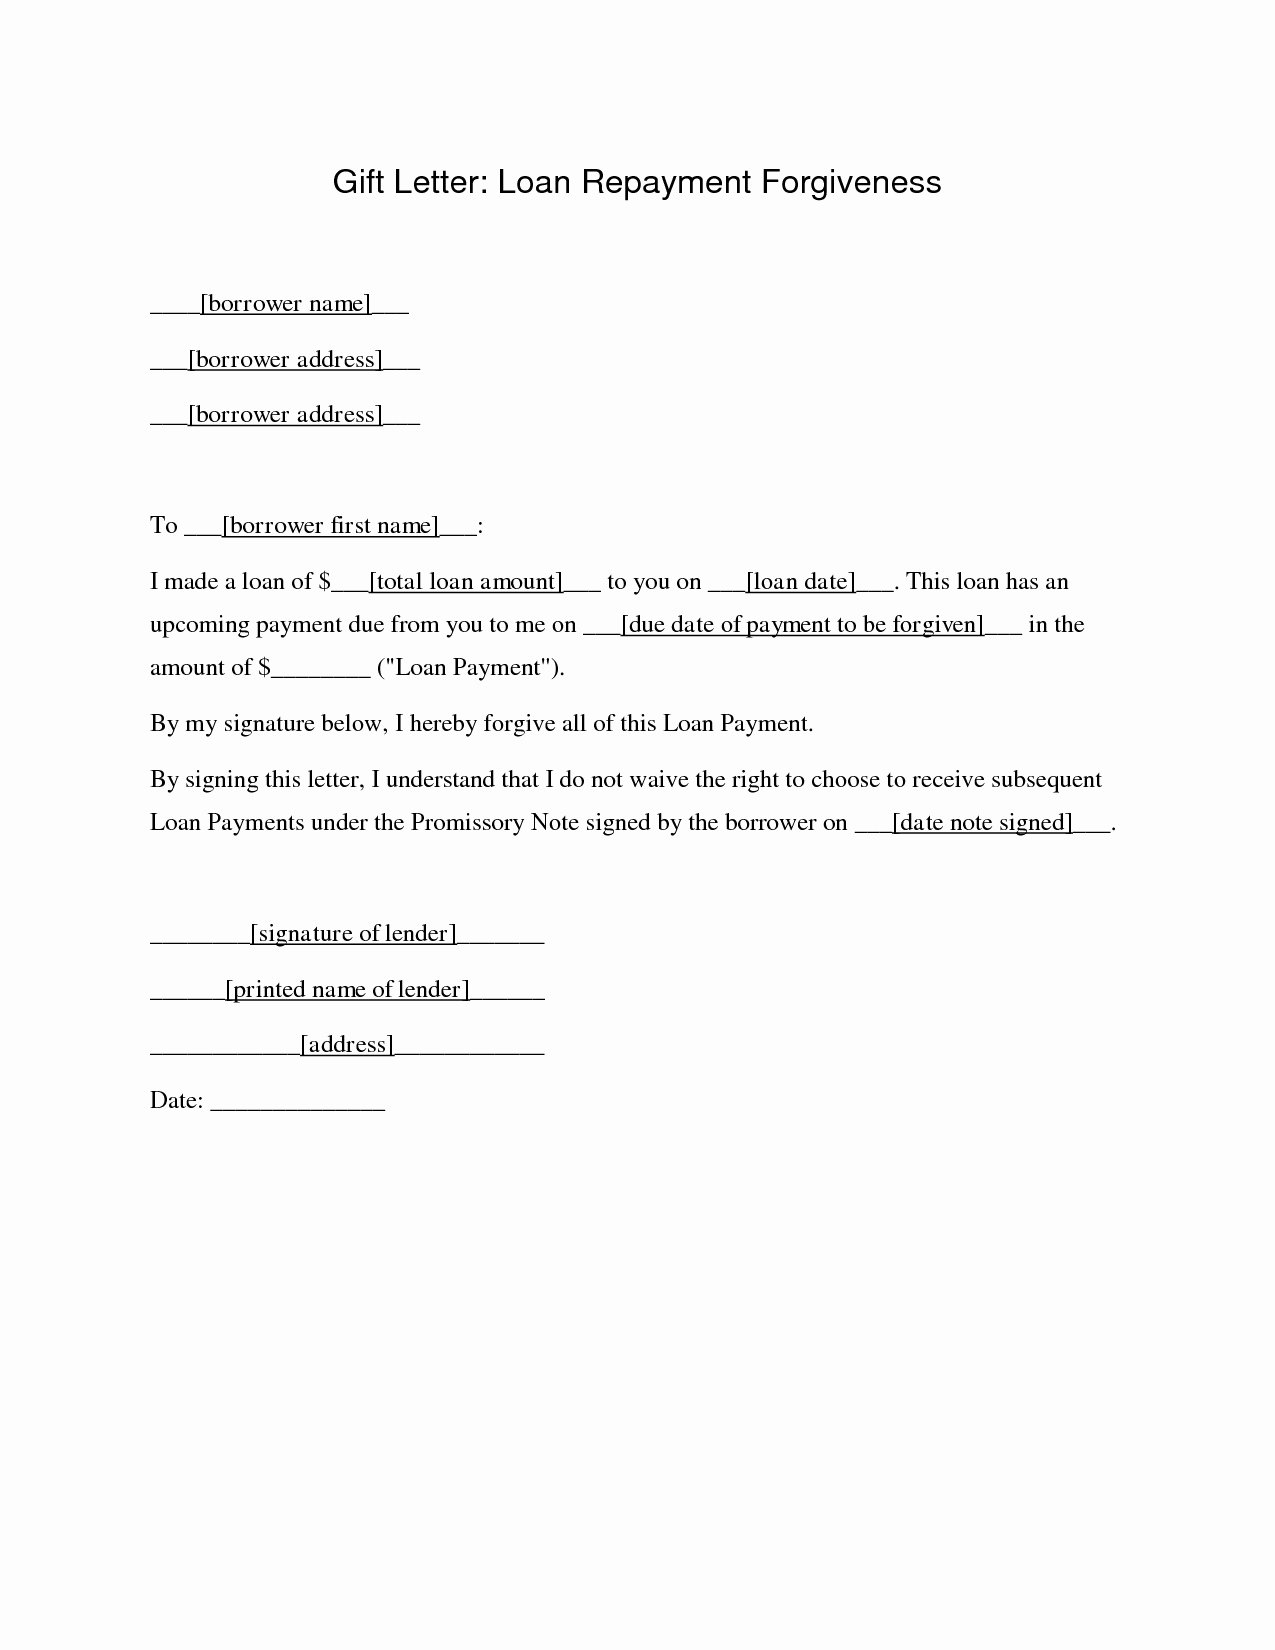 Personal Loan Letter format Elegant Personal Loan Repayment Letter Template Examples